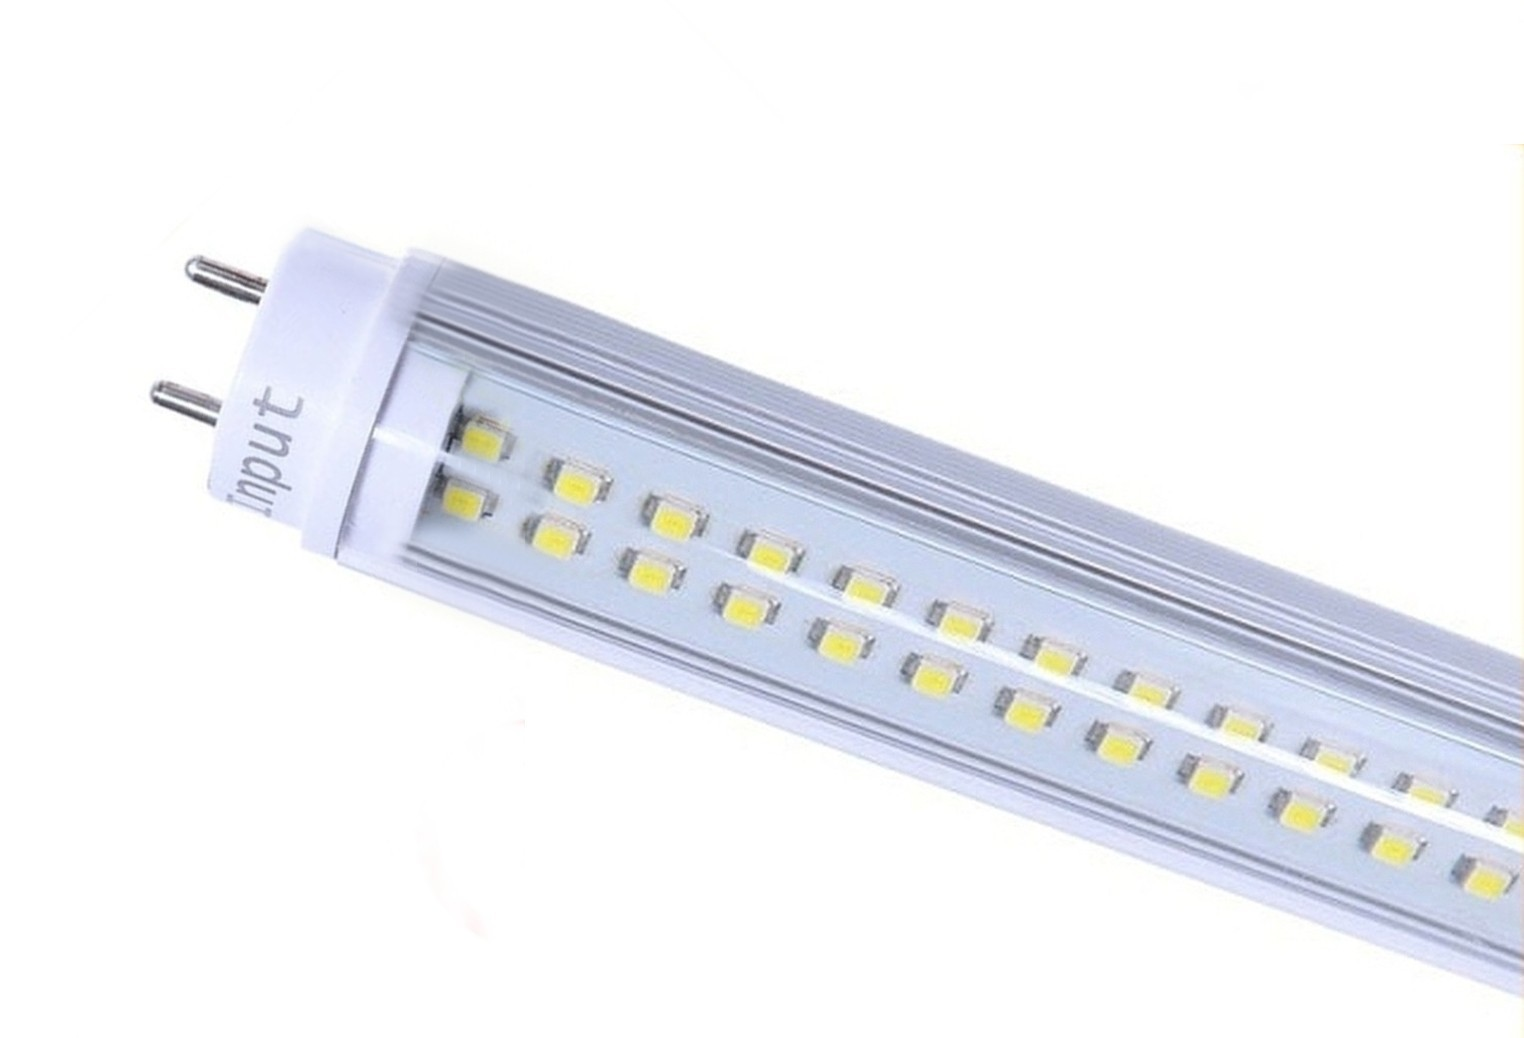 L mpara led wikiwand - Lamparas de led para techo ...